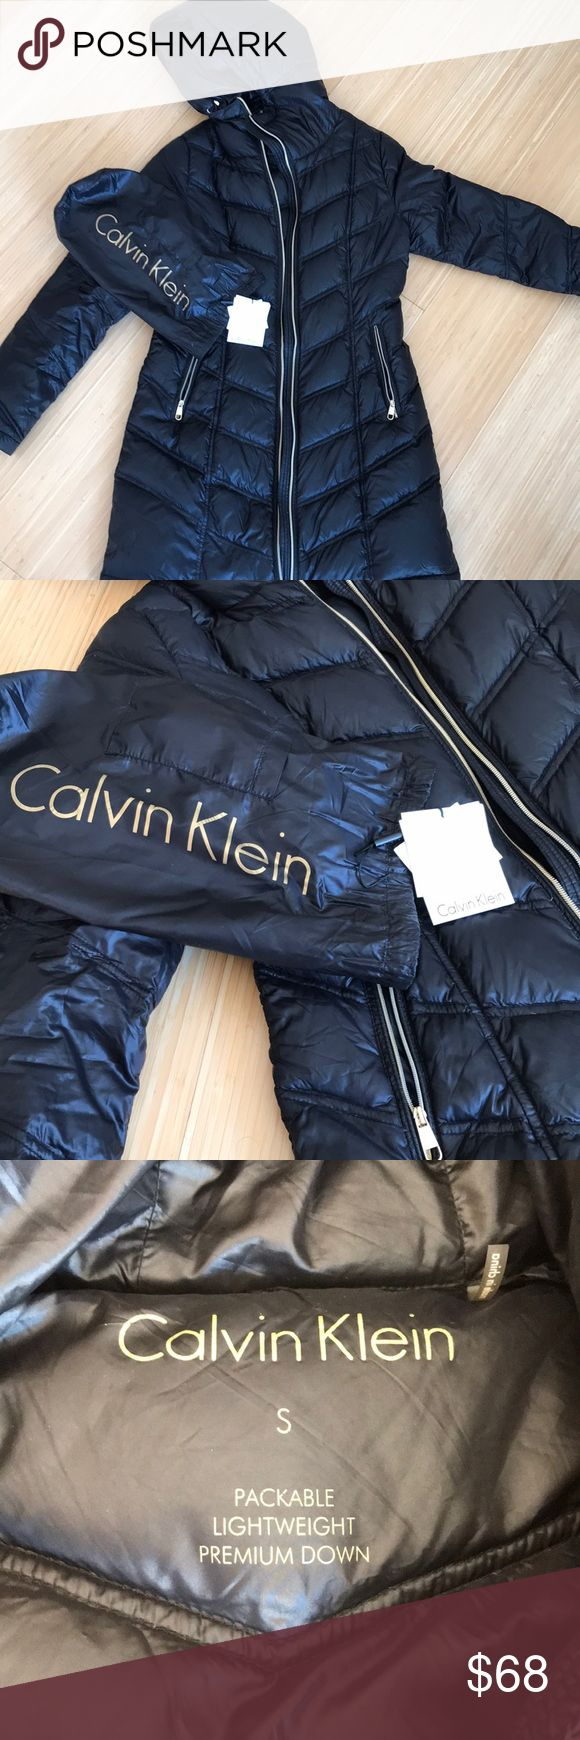 Black Calvin Klein Jacket Selling a small Calvin Klein packable premium down lightweight winter jacket. Used but still in great condition. Will come with the original tags and packable bag. Open to offers 😊 Calvin Klein Jackets & Coats Puffers